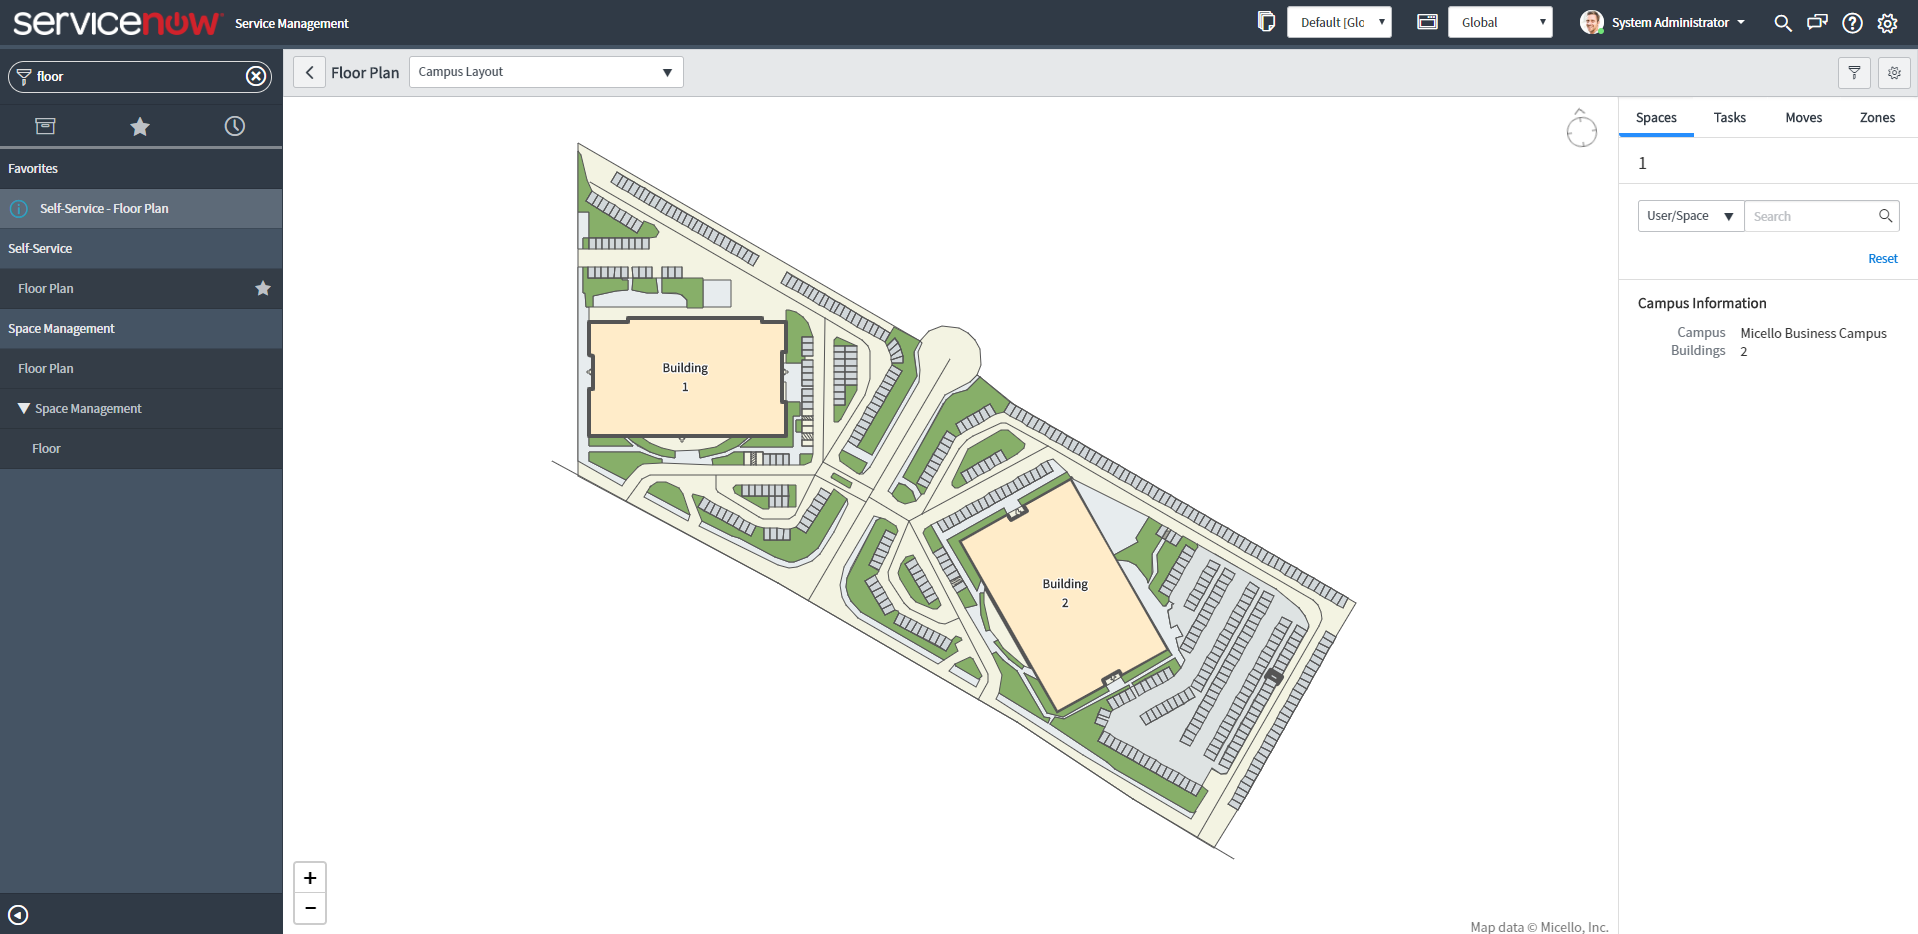 Interactive and Overall Facility Site Maps by the Now Platform